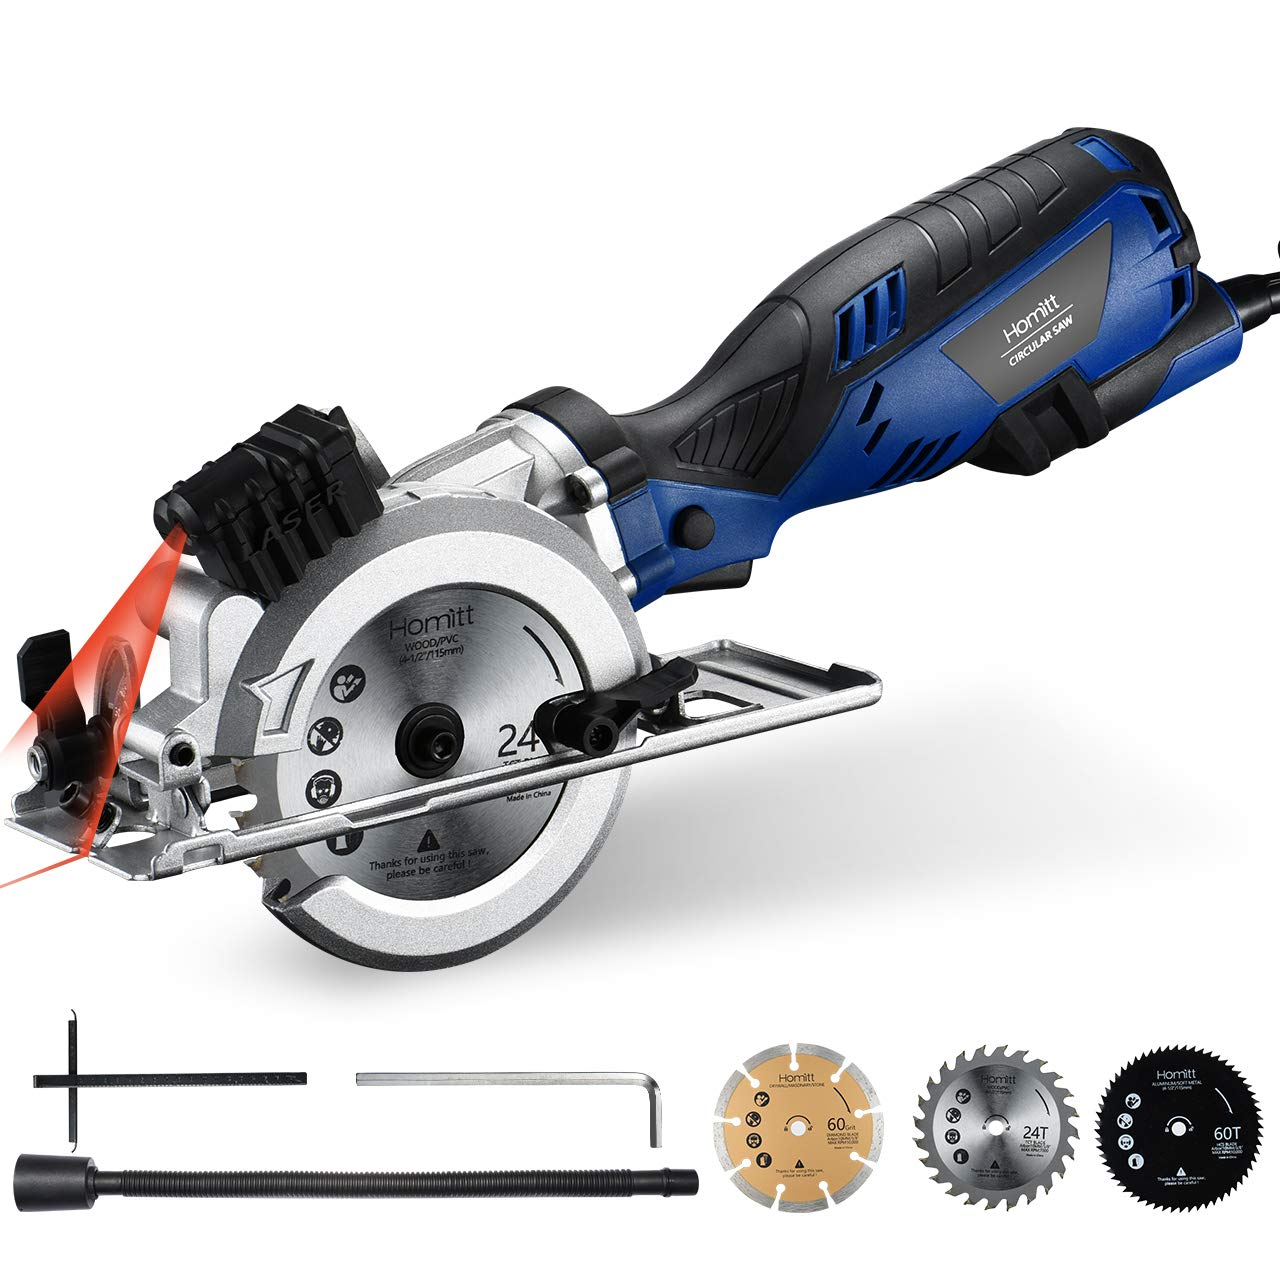 Circular Saw, Homitt Compact Saw with 3 Saw Blades(4-1/2''), Laser Guide, 5.8A 3500RPM, Max Cutting Depth 1-11/16''(90°), 1-1/8''(45°), Ideal for Wood, Soft Metal, PVC, Tile and Plastic Cuts